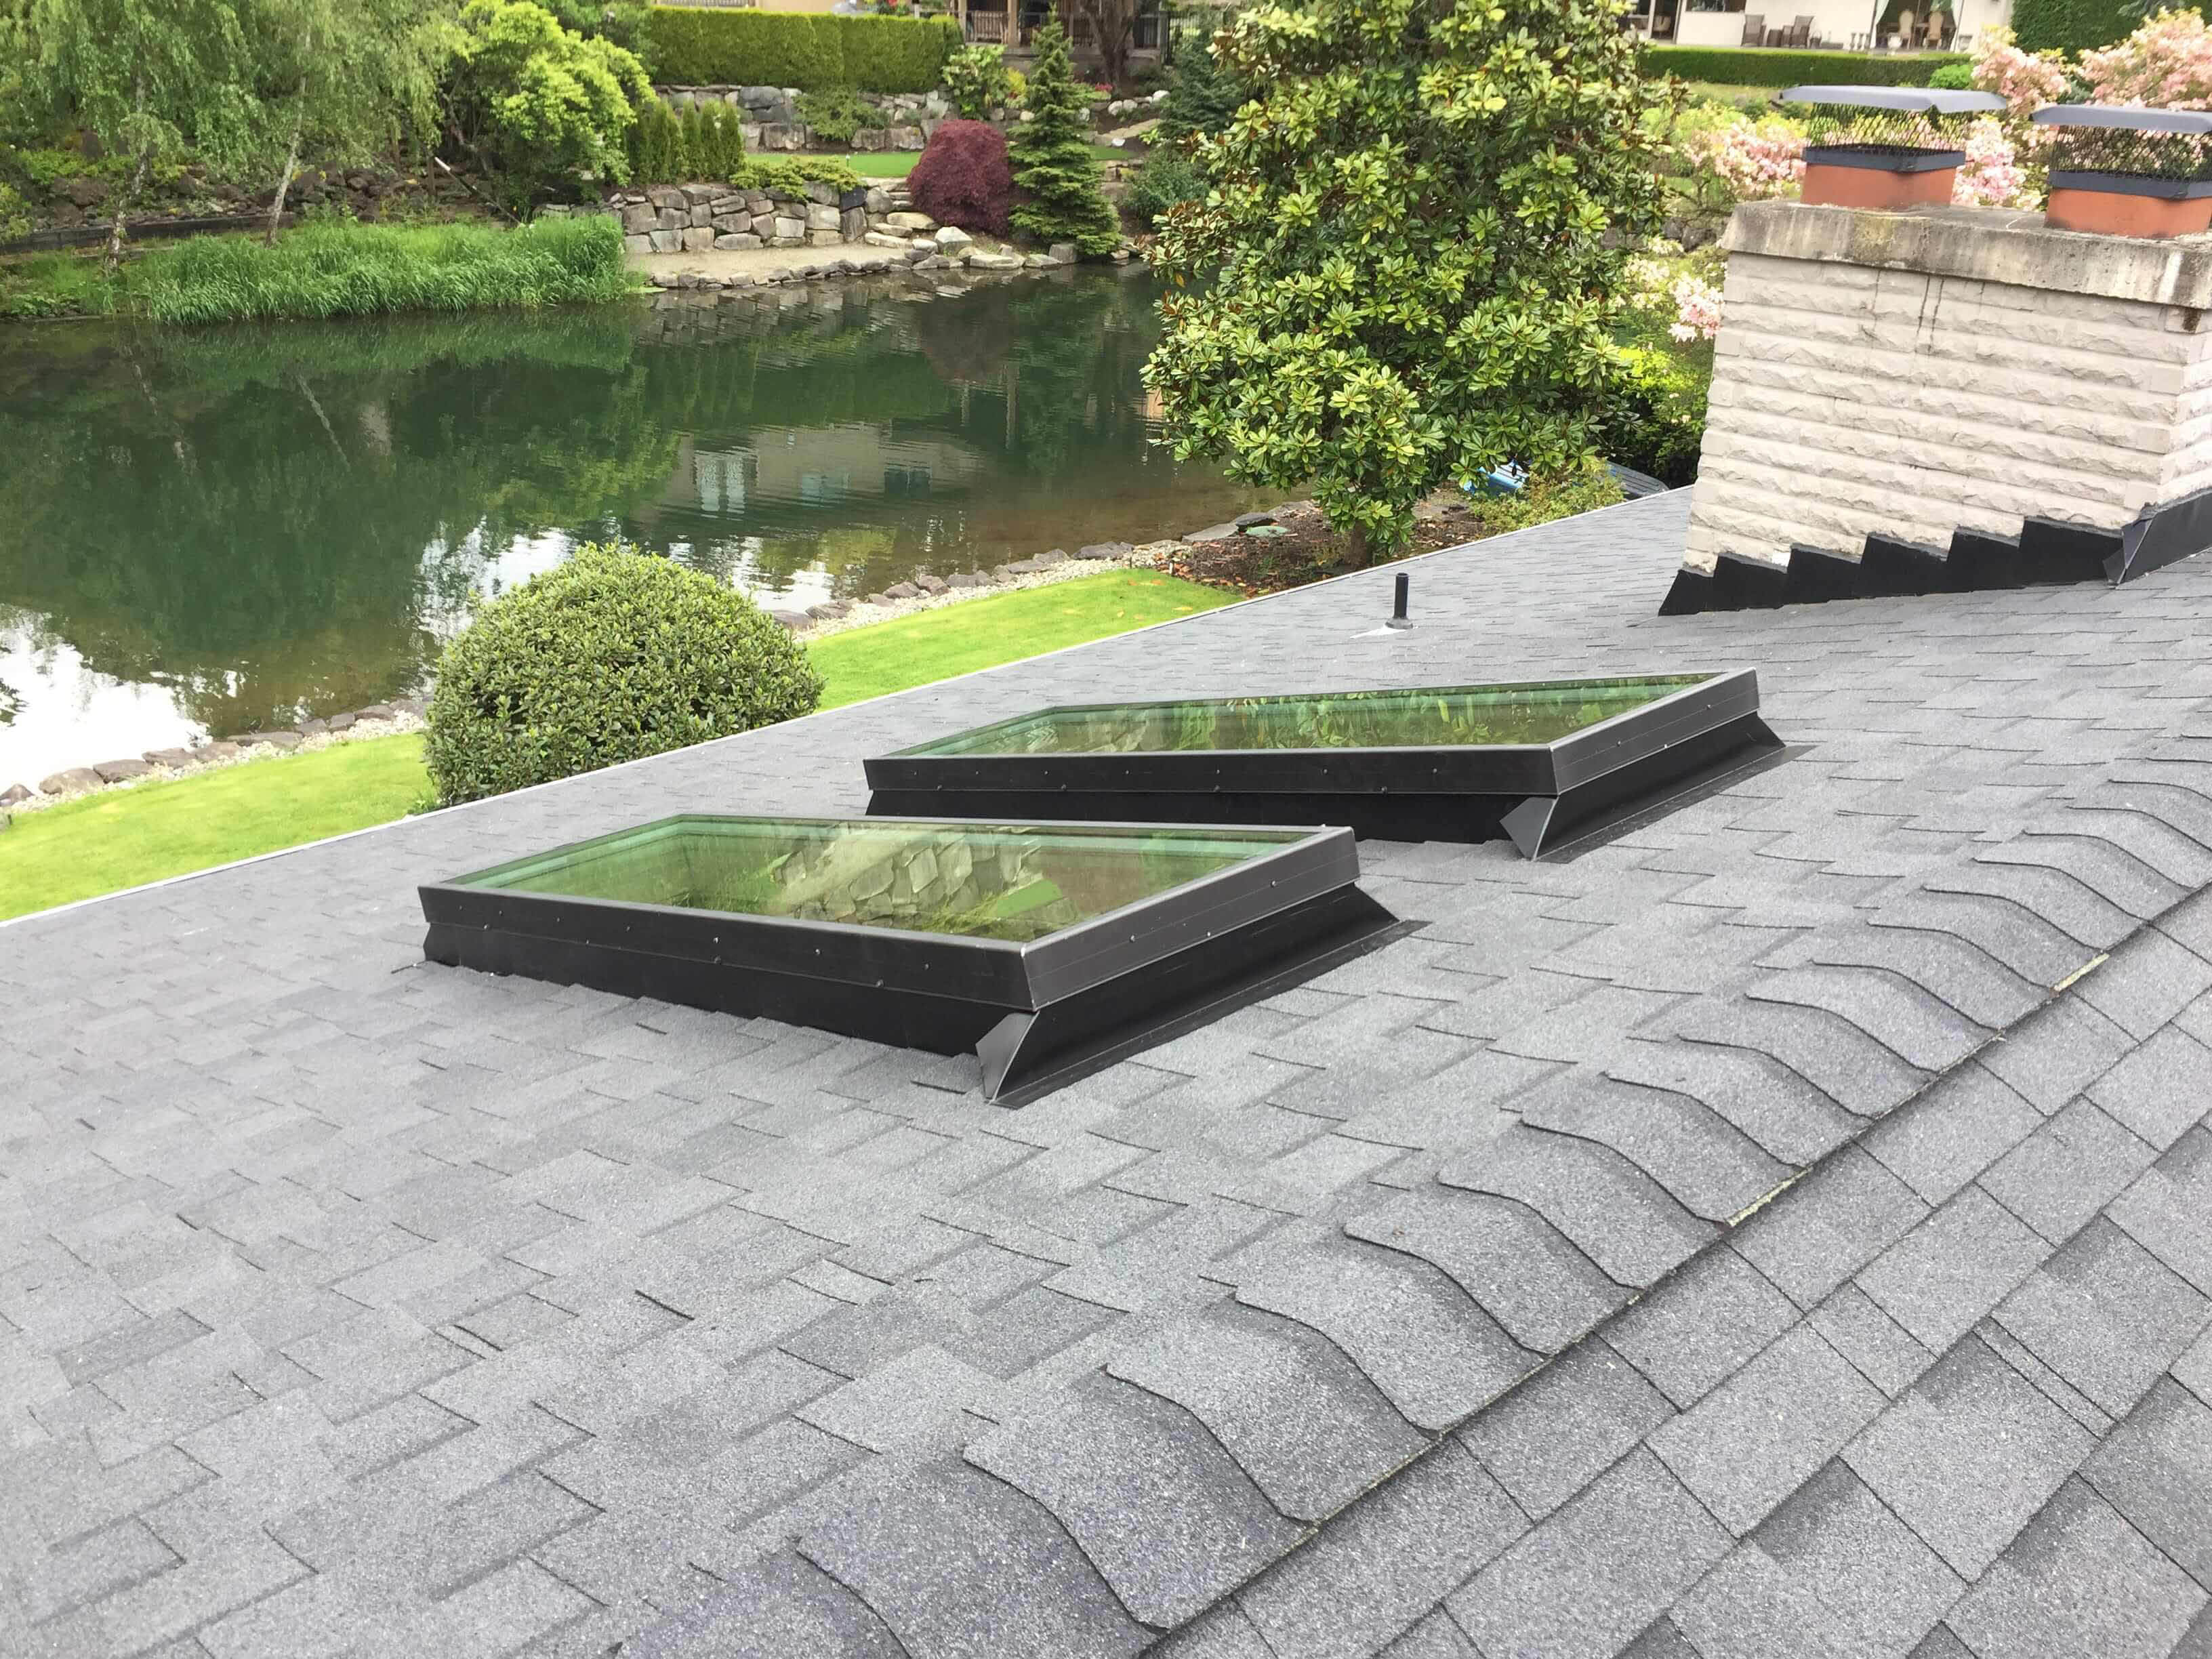 Custom roofing and carpentry - skylights - Sherpa Roofing & Construction - professional roofers in Woodinville, WA - Woodinville roofing company